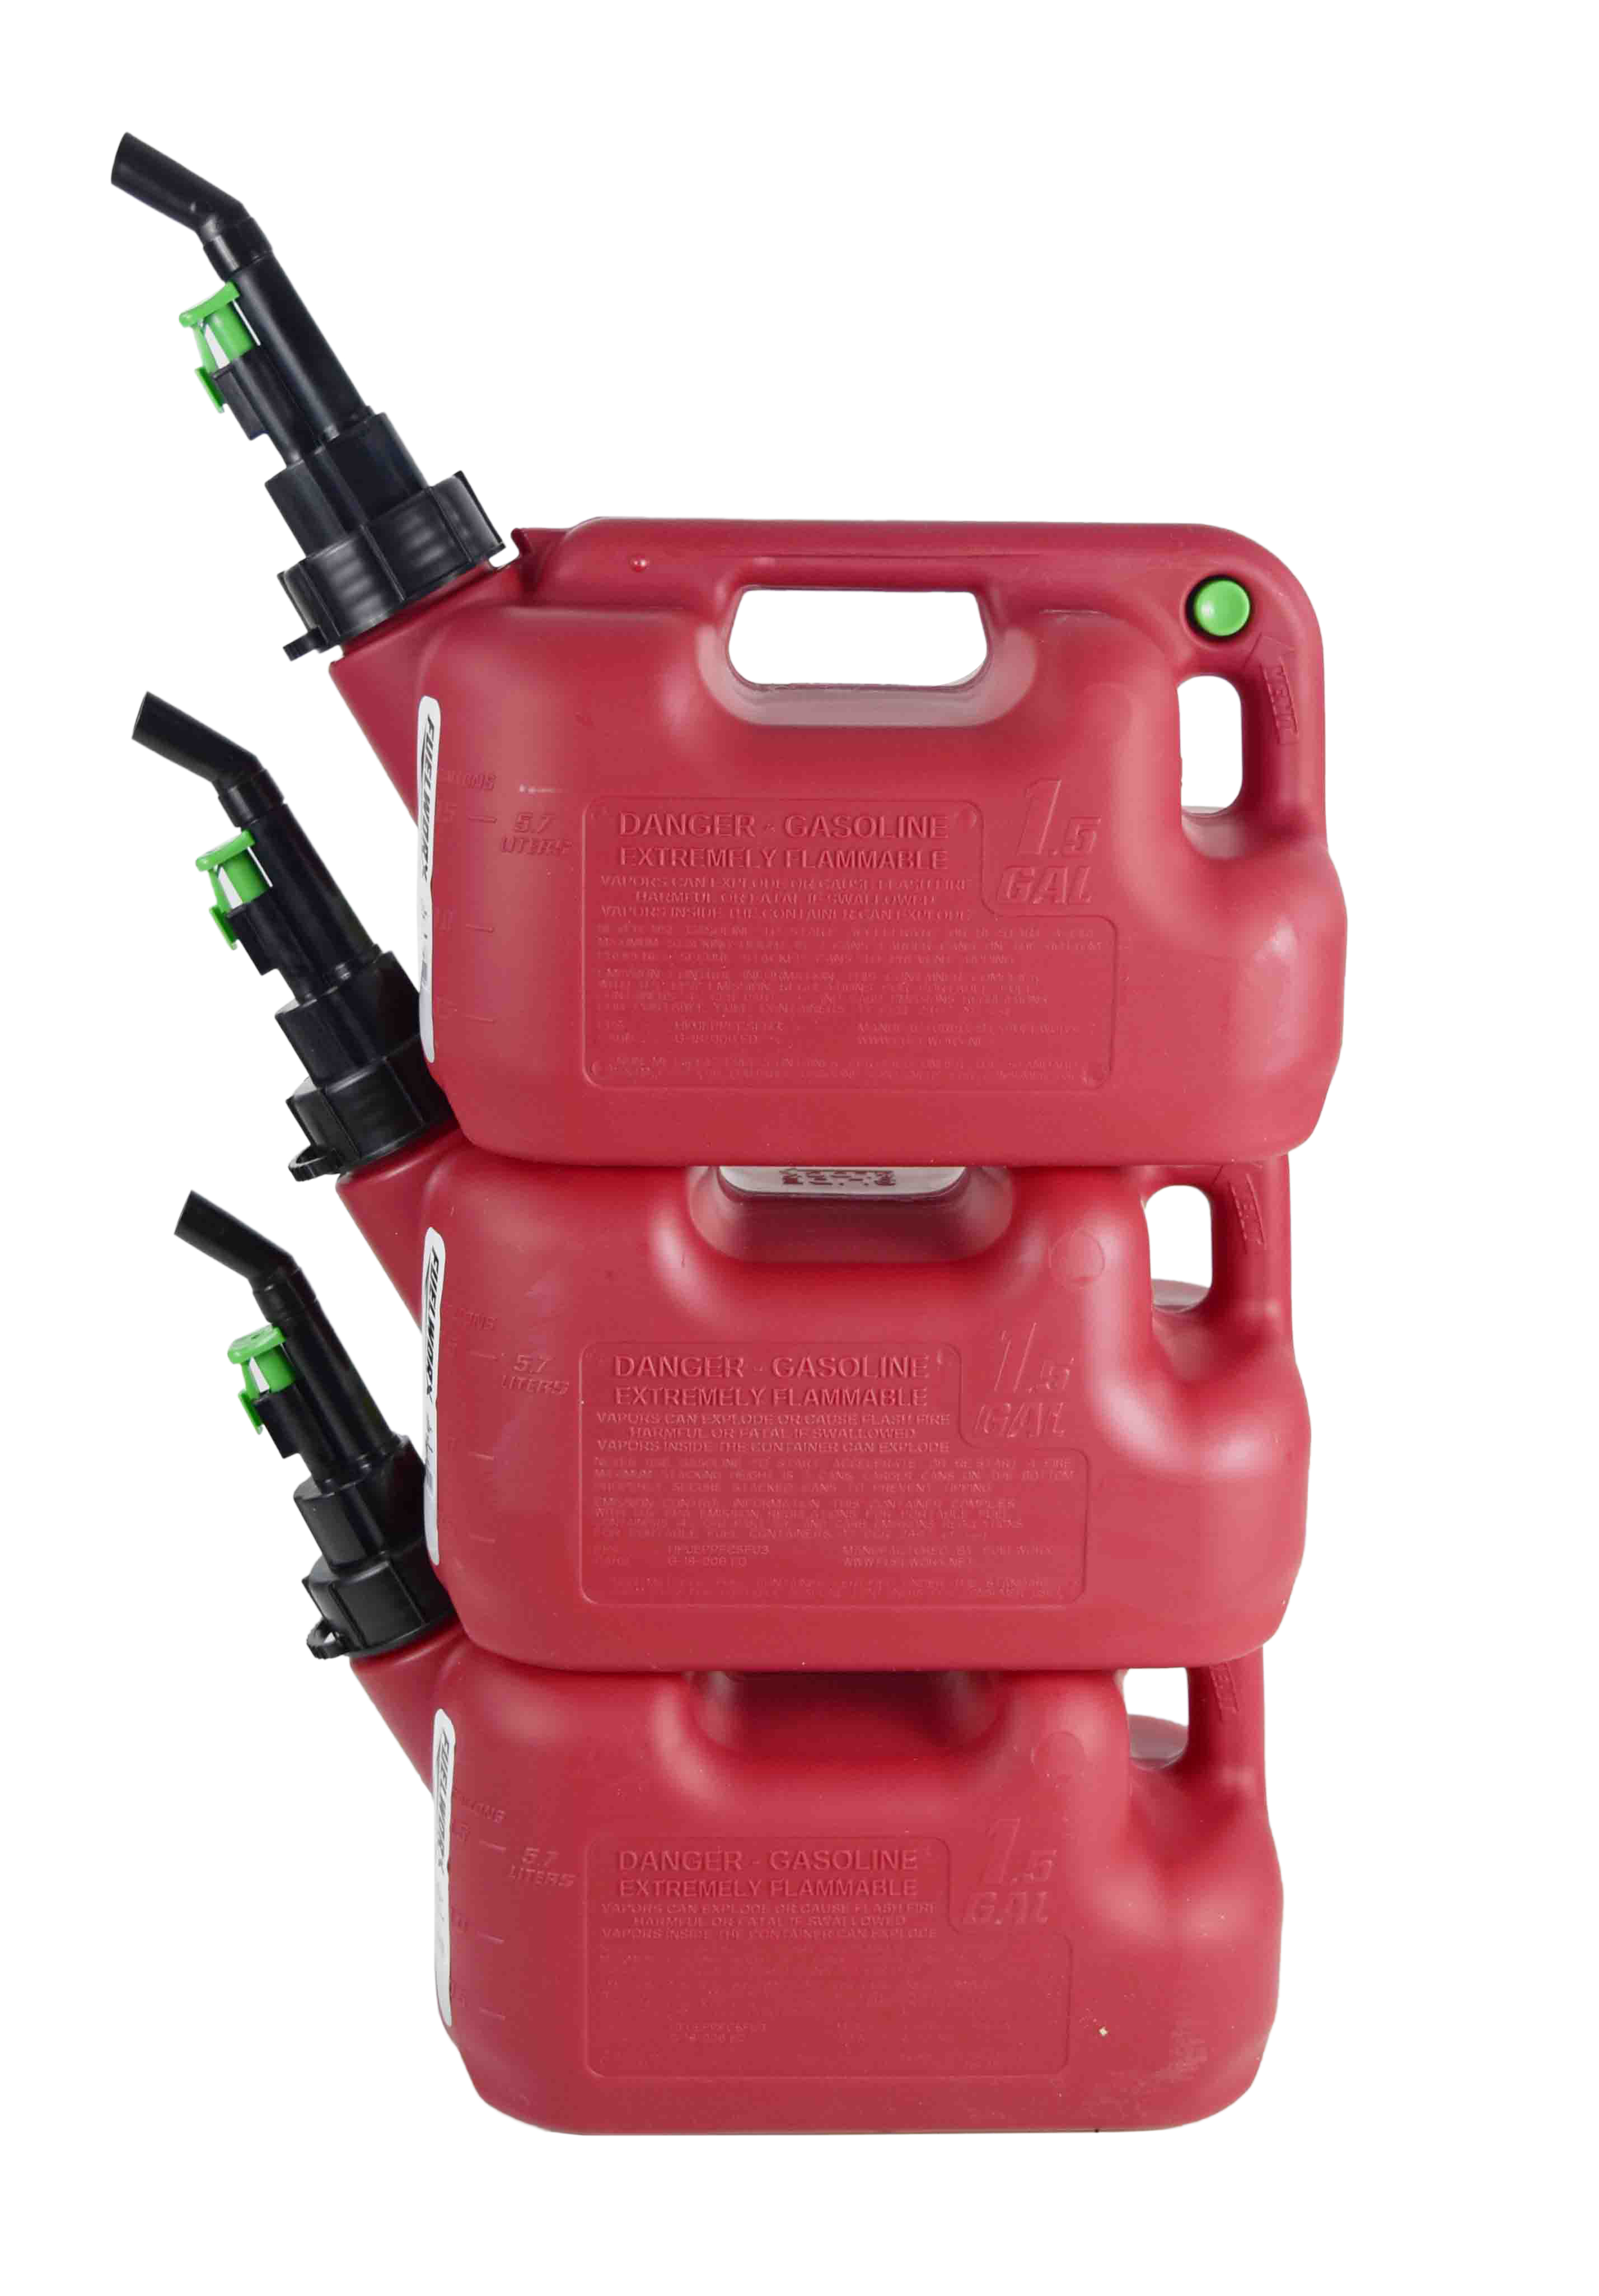 Fuelworx-Red-1.5-Gallon-Stackable-Fast-Pour-Gas-Fuel-Cans-CARB-Compliant-Made-in-The-USA-1.5-Gallon-Gas-Can-3-Pack-image-1